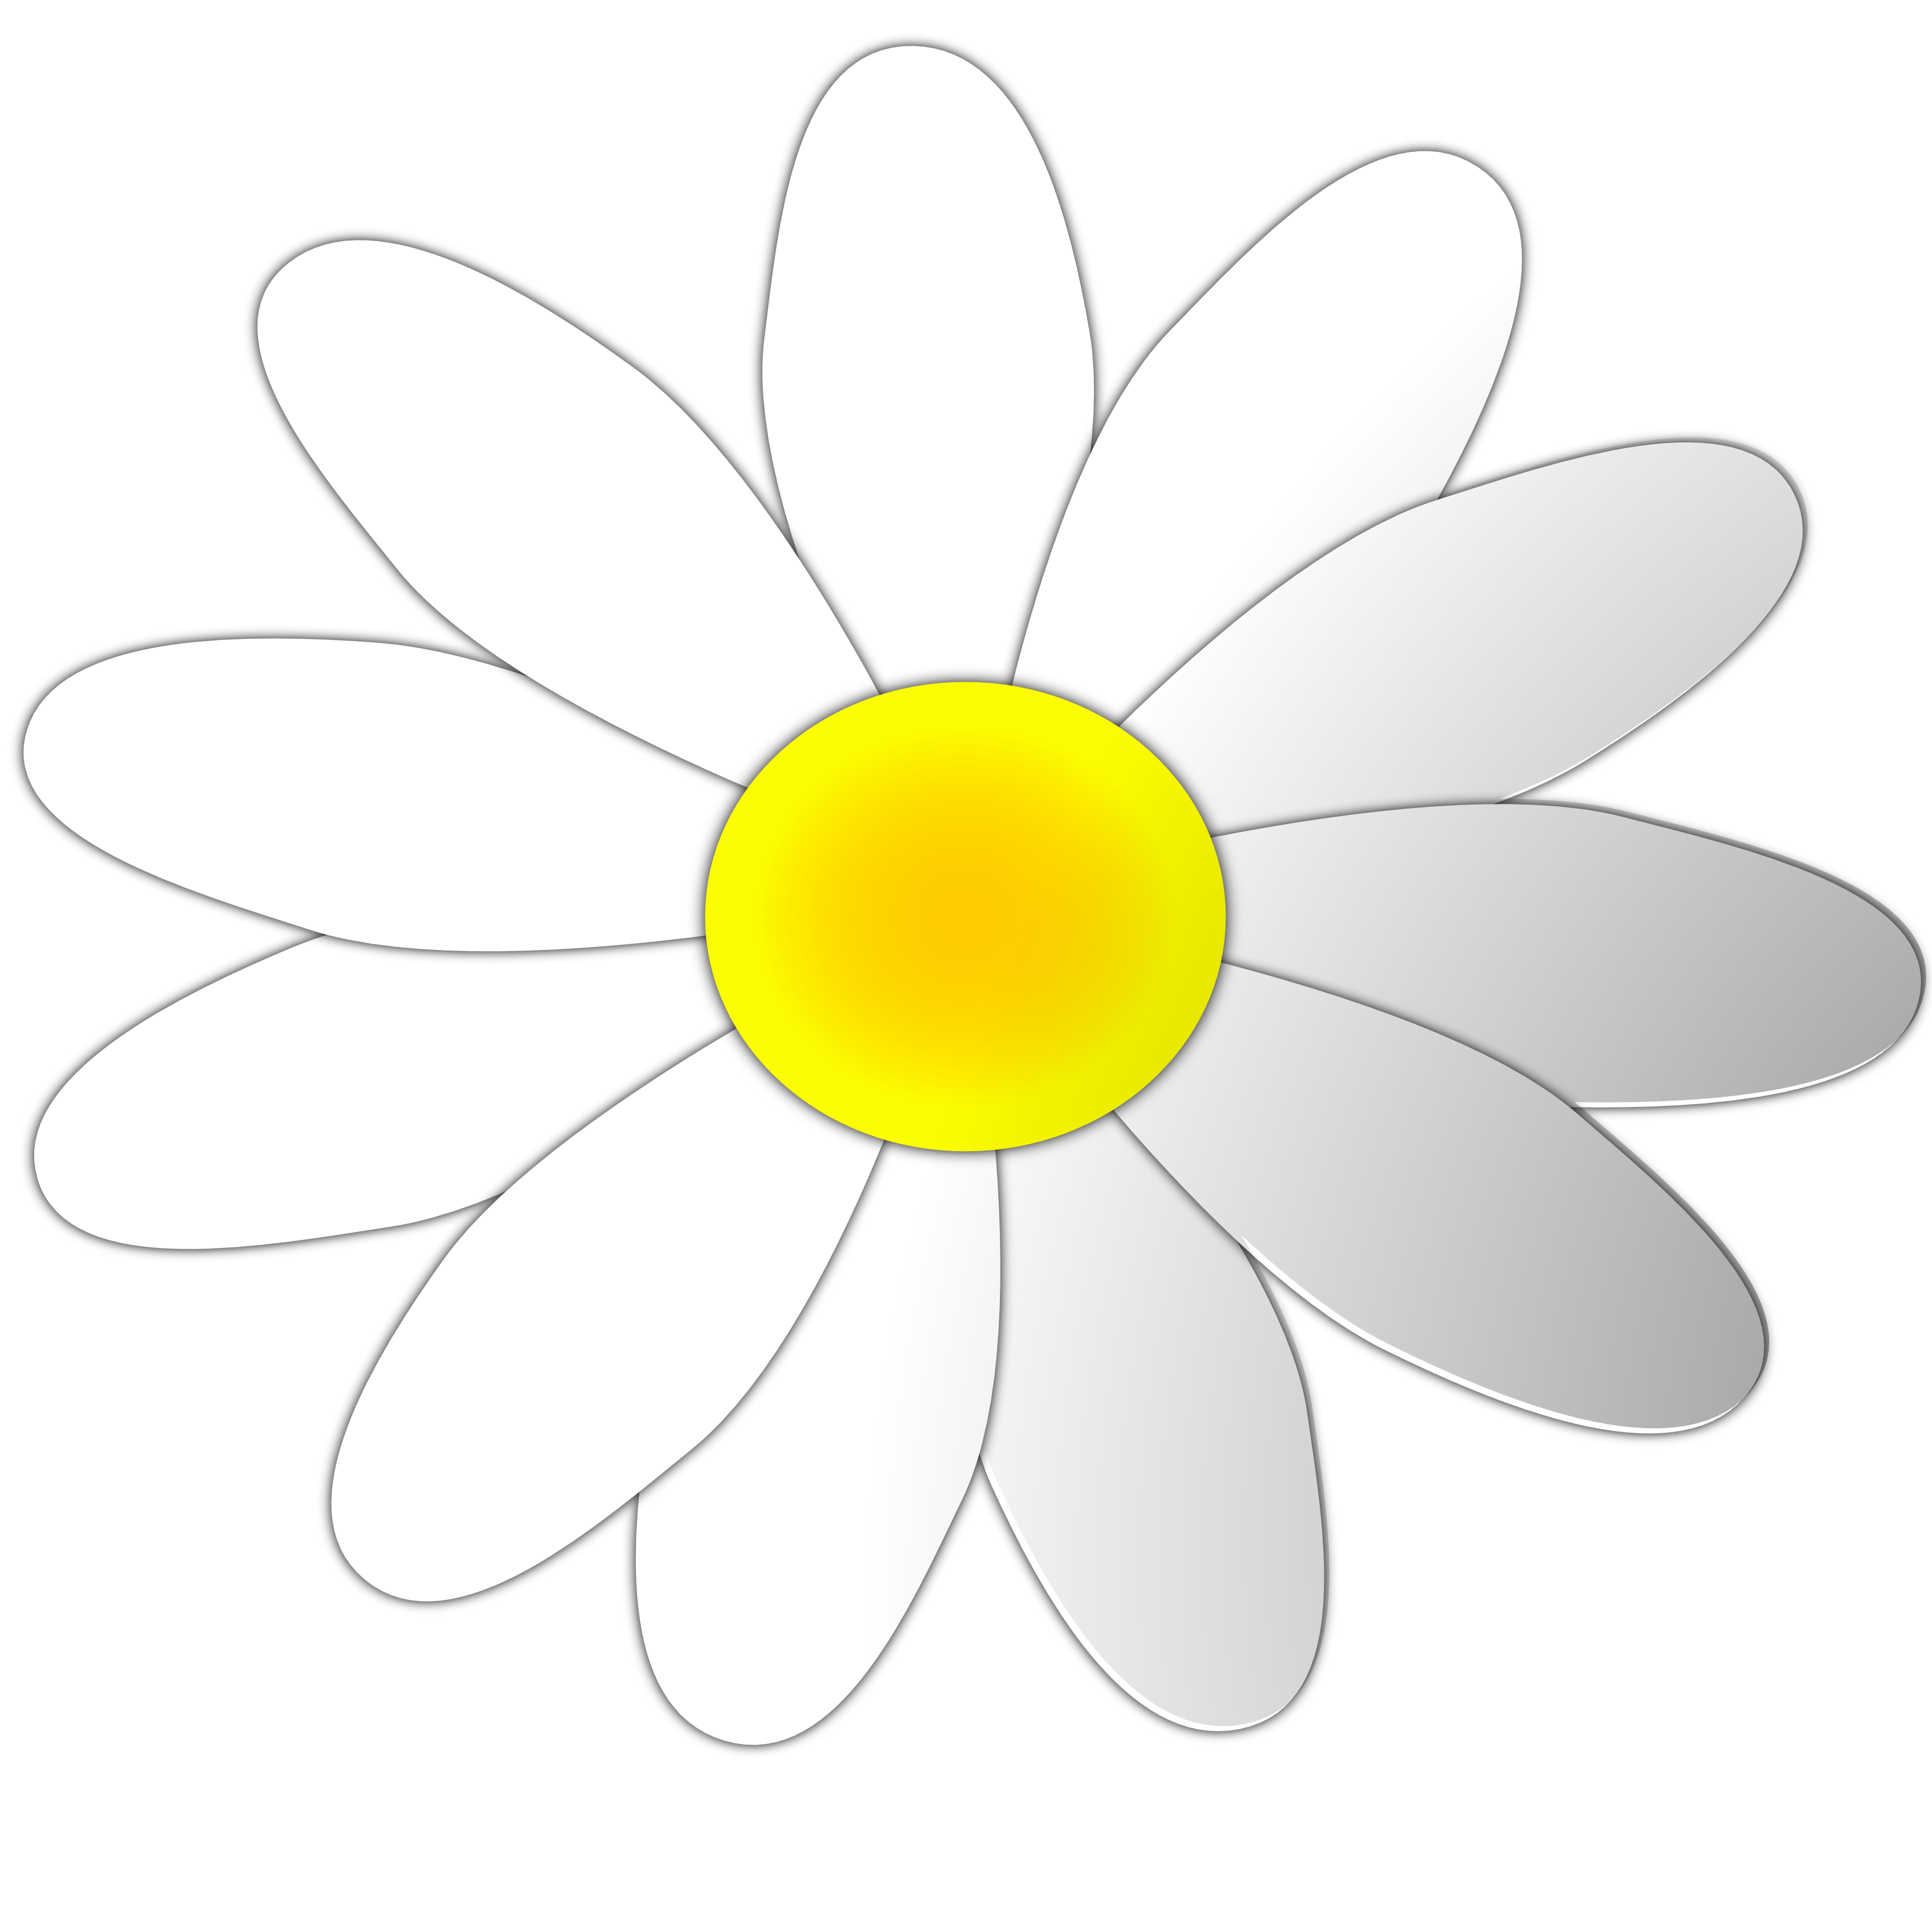 White daisy clipart image black and white stock Free Free Daisy Images, Download Free Clip Art, Free Clip ... image black and white stock